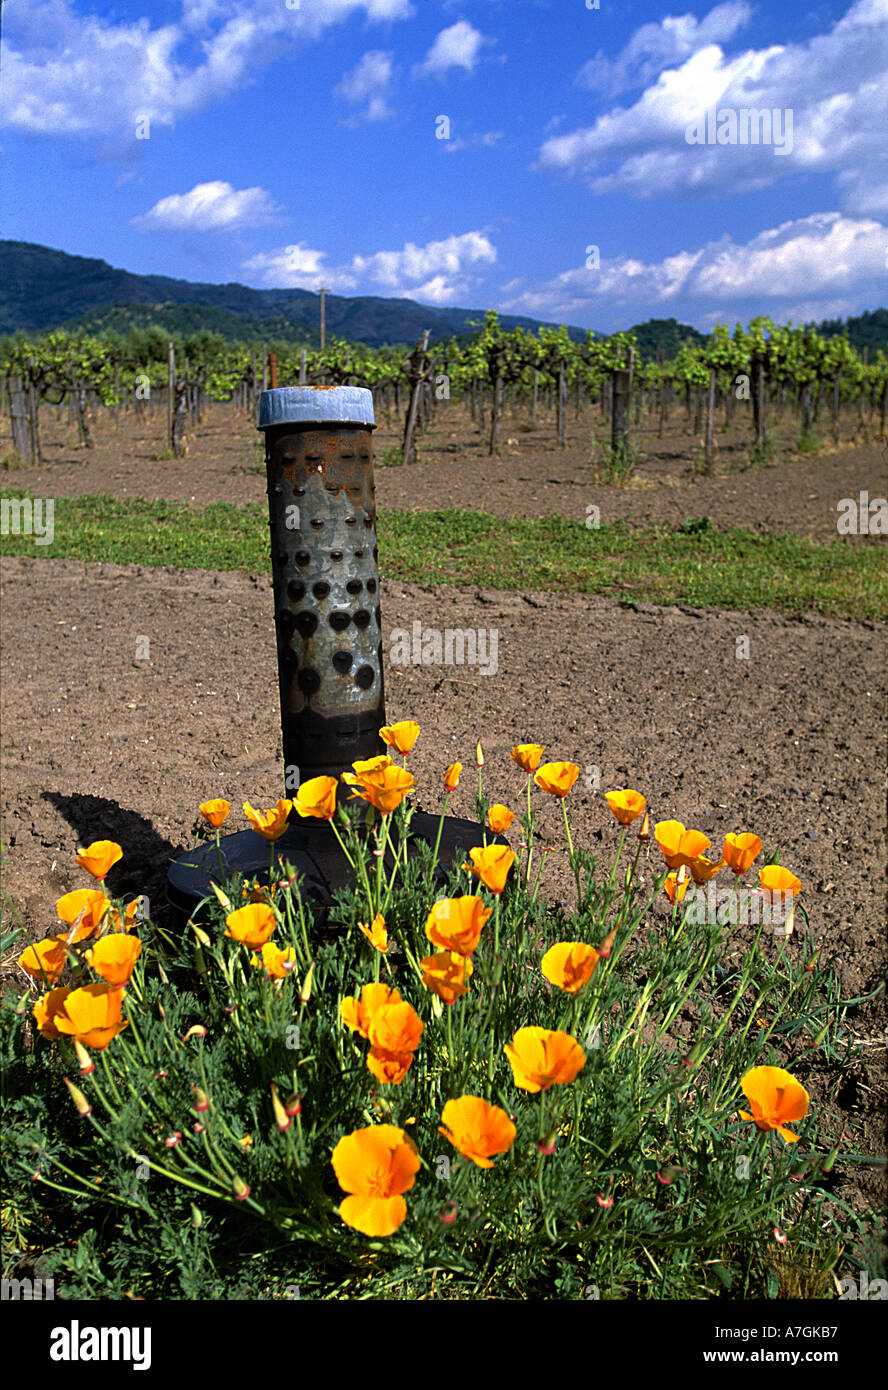 USA, California, Napa Valley, wine country, smudge pot and poppies in a vineyard - Stock Image